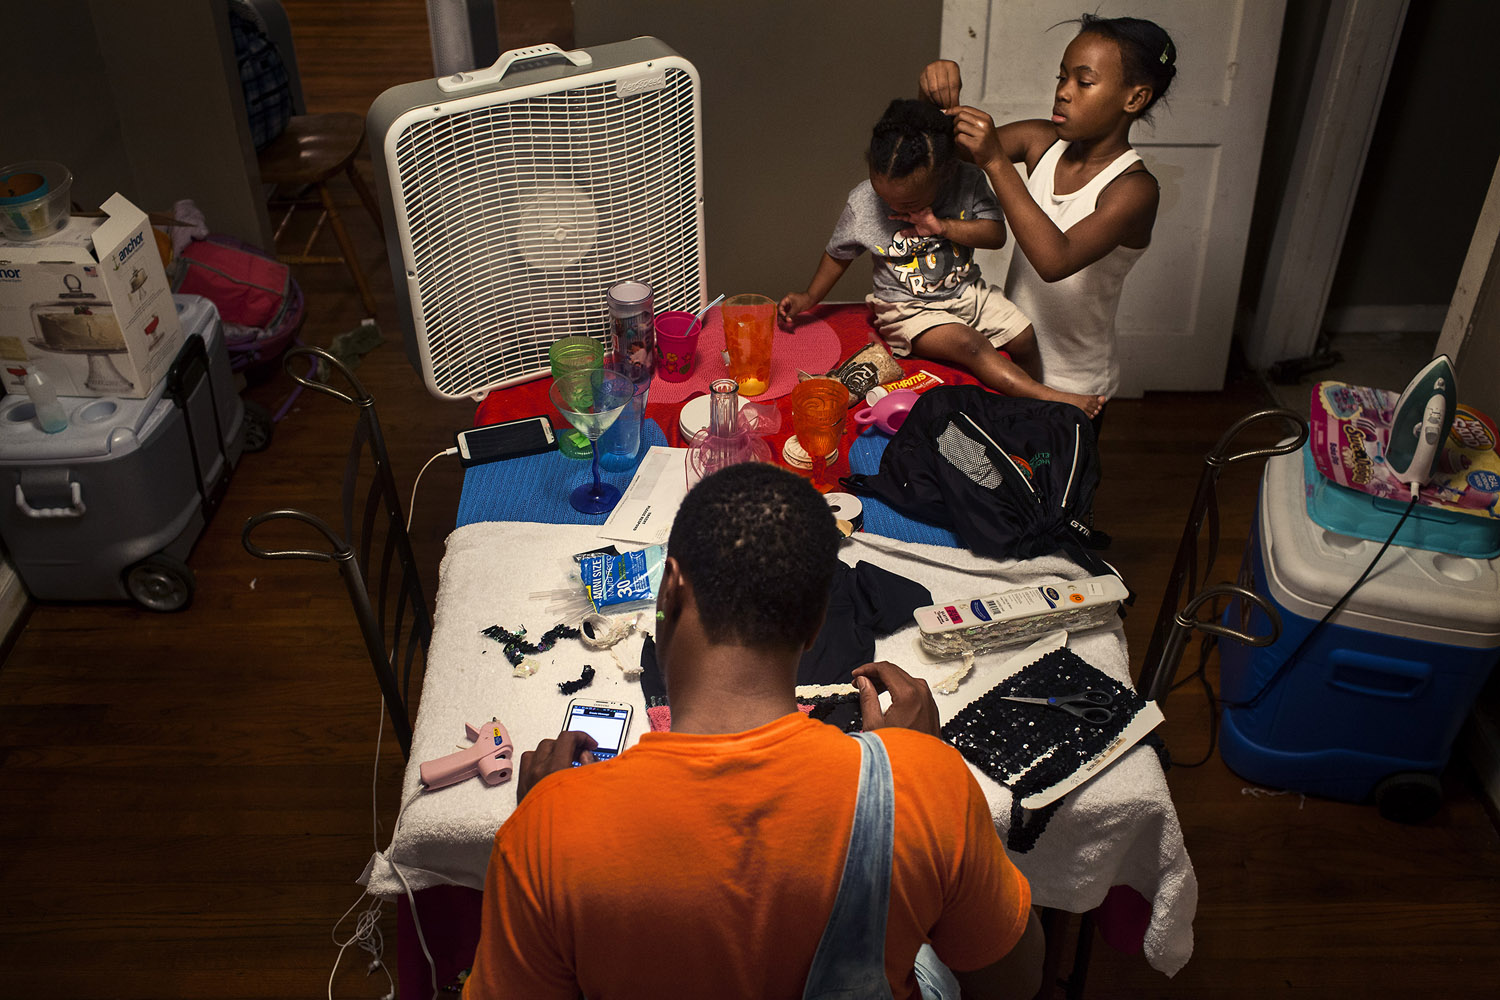 Kentrell sits in his mother's dining room creating a new performance outfit with a standard leotard, sequins, a hot glue gun and a pair of scissors. He designs most of the costumes for the Prancing Elites, utilizing basic craft materials and his own creativity. His niece and nephew watch as he works. Kentrell's niece, who is 12, also practices J-Sette dance.